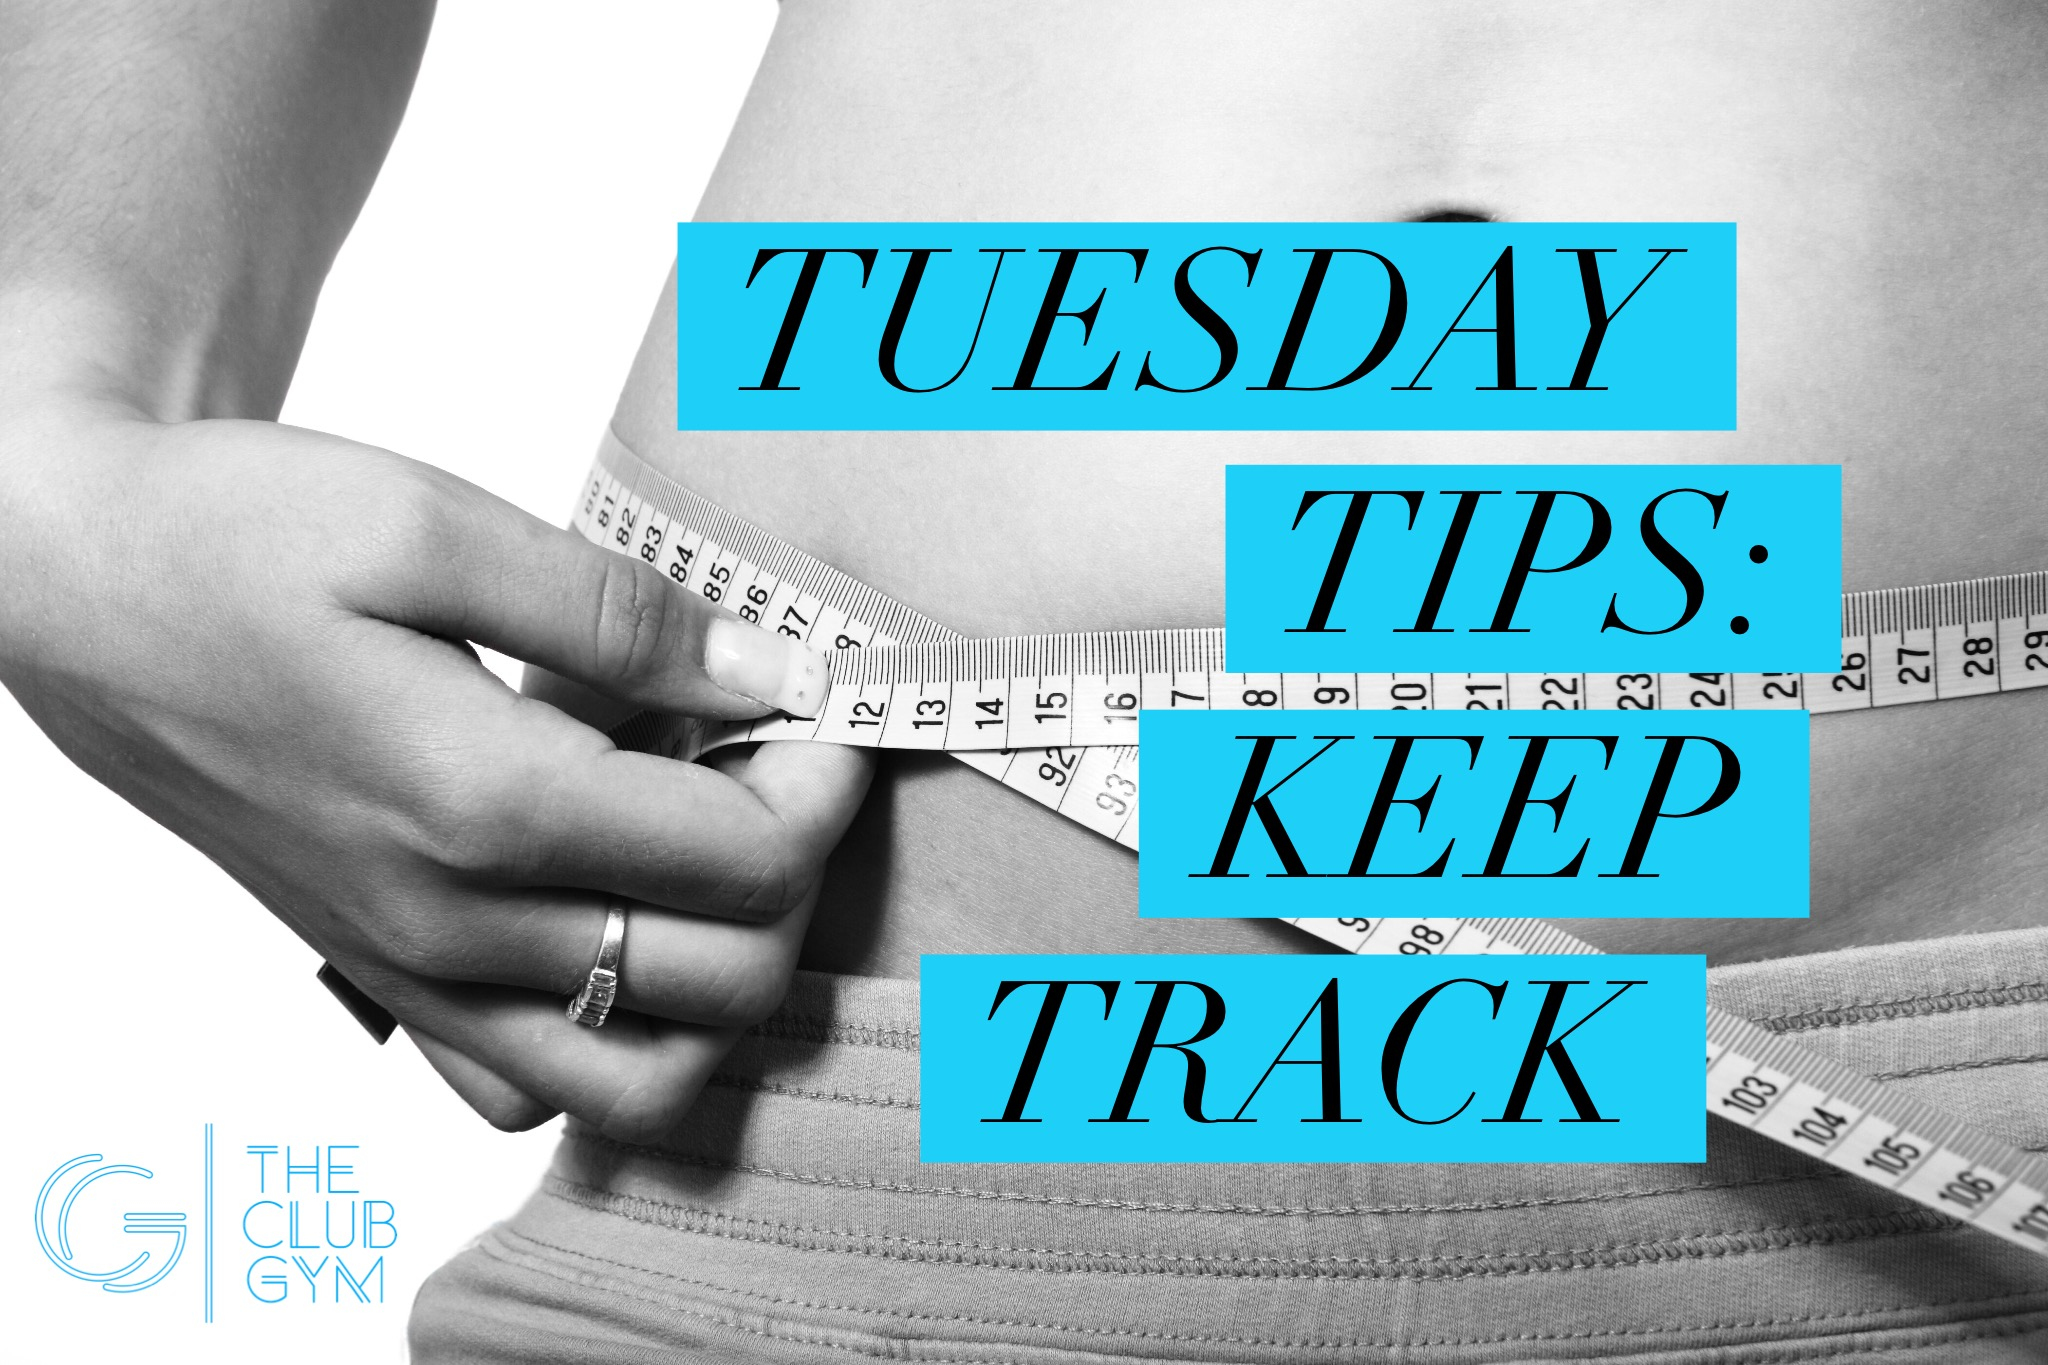 Tuesday Tips - Keep Track